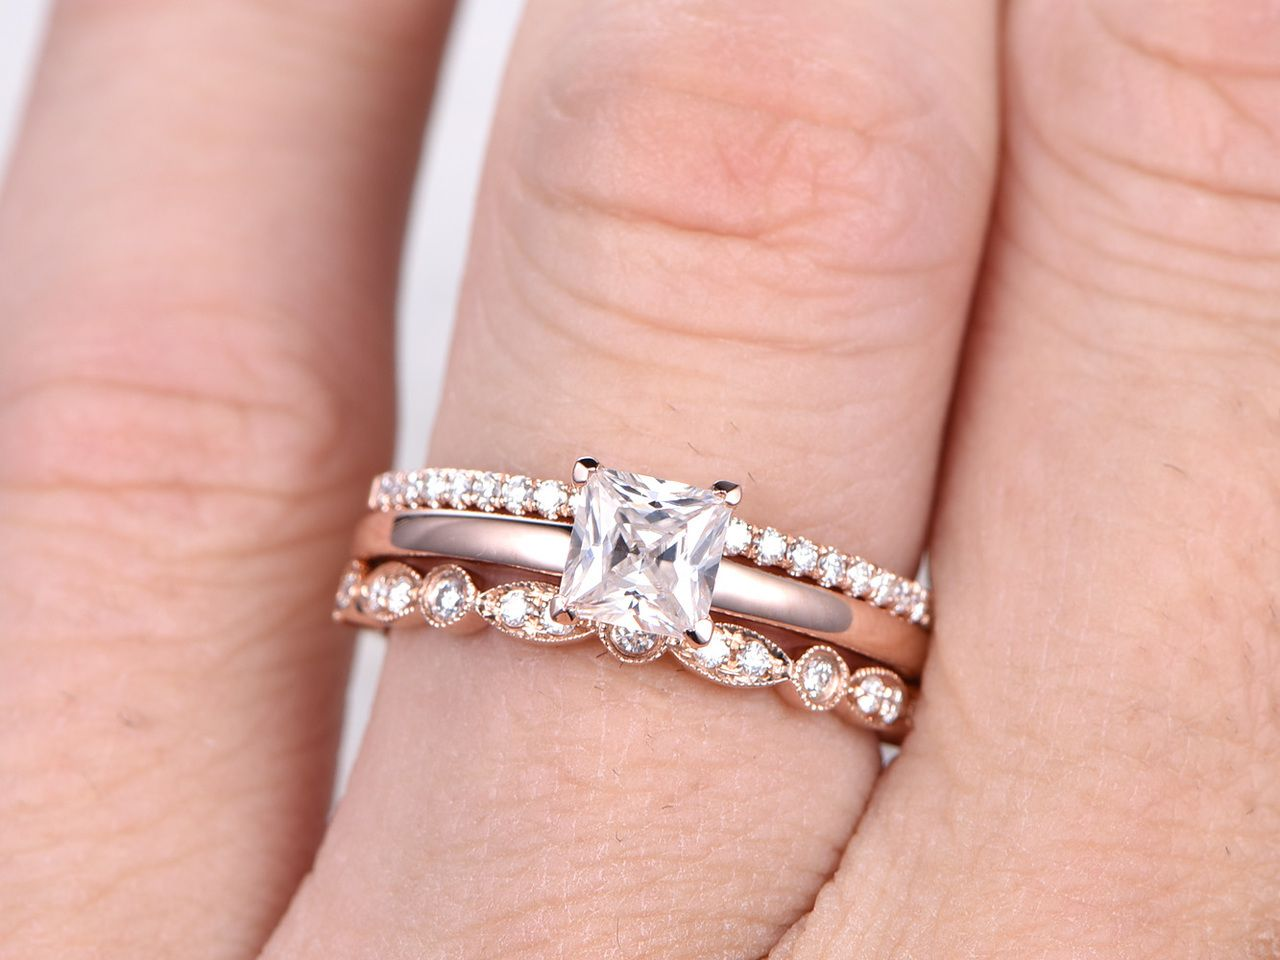 5mm Princess Cut Moissanite Engagement Ring Set Diamond Wedding ...